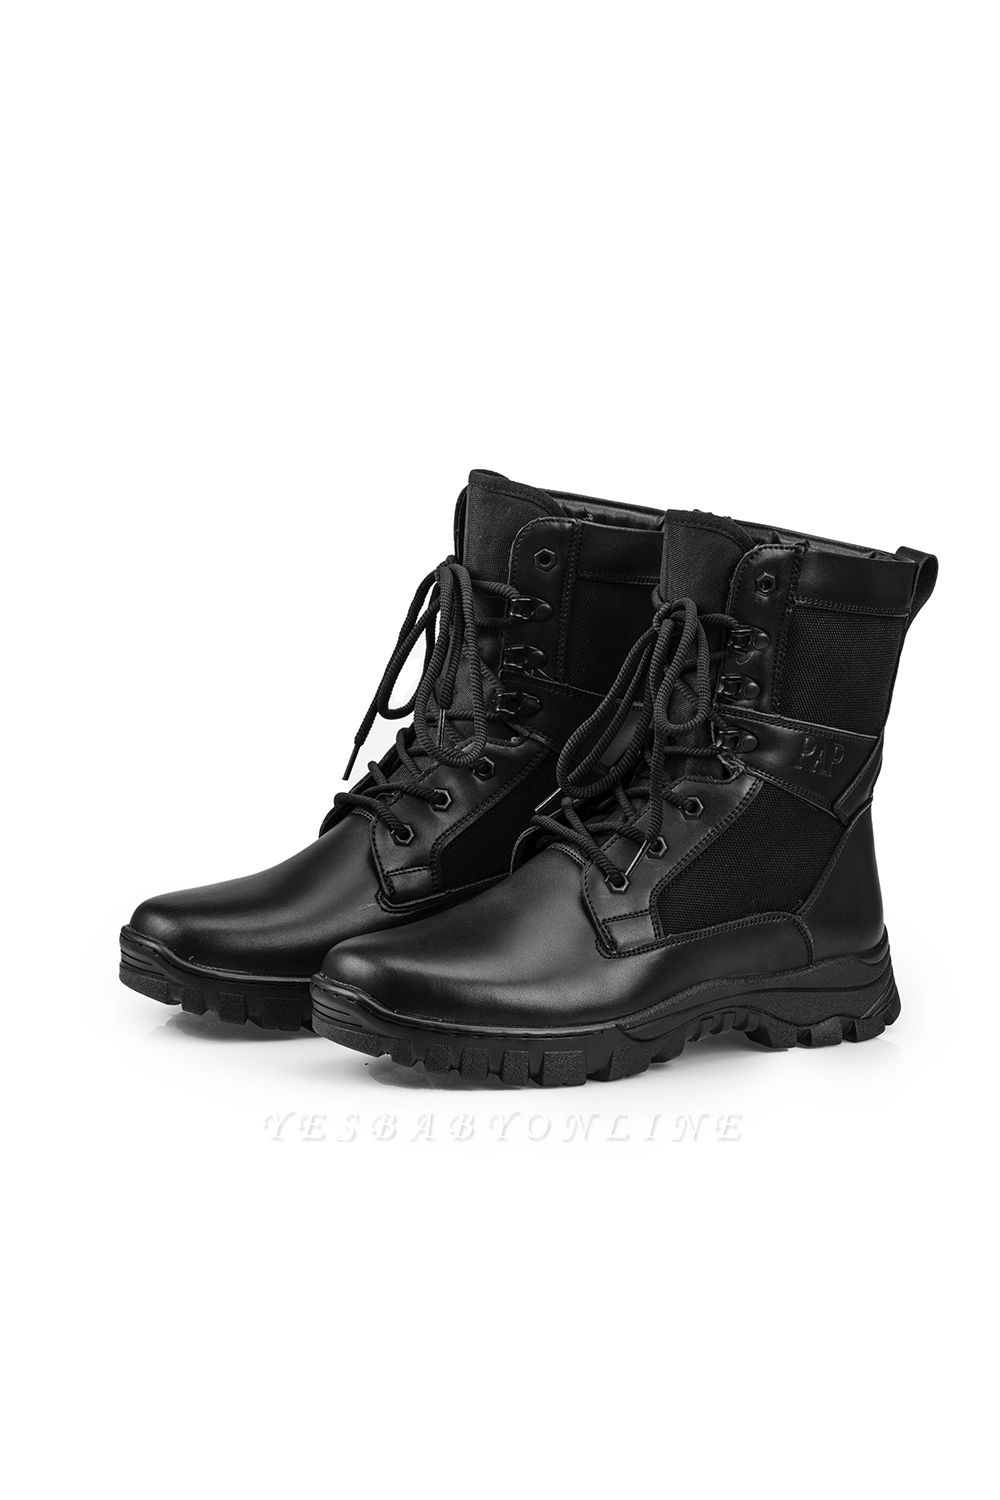 Ankle Bootie Winter Lace up Mid Calf Military Combat Boots On Sale